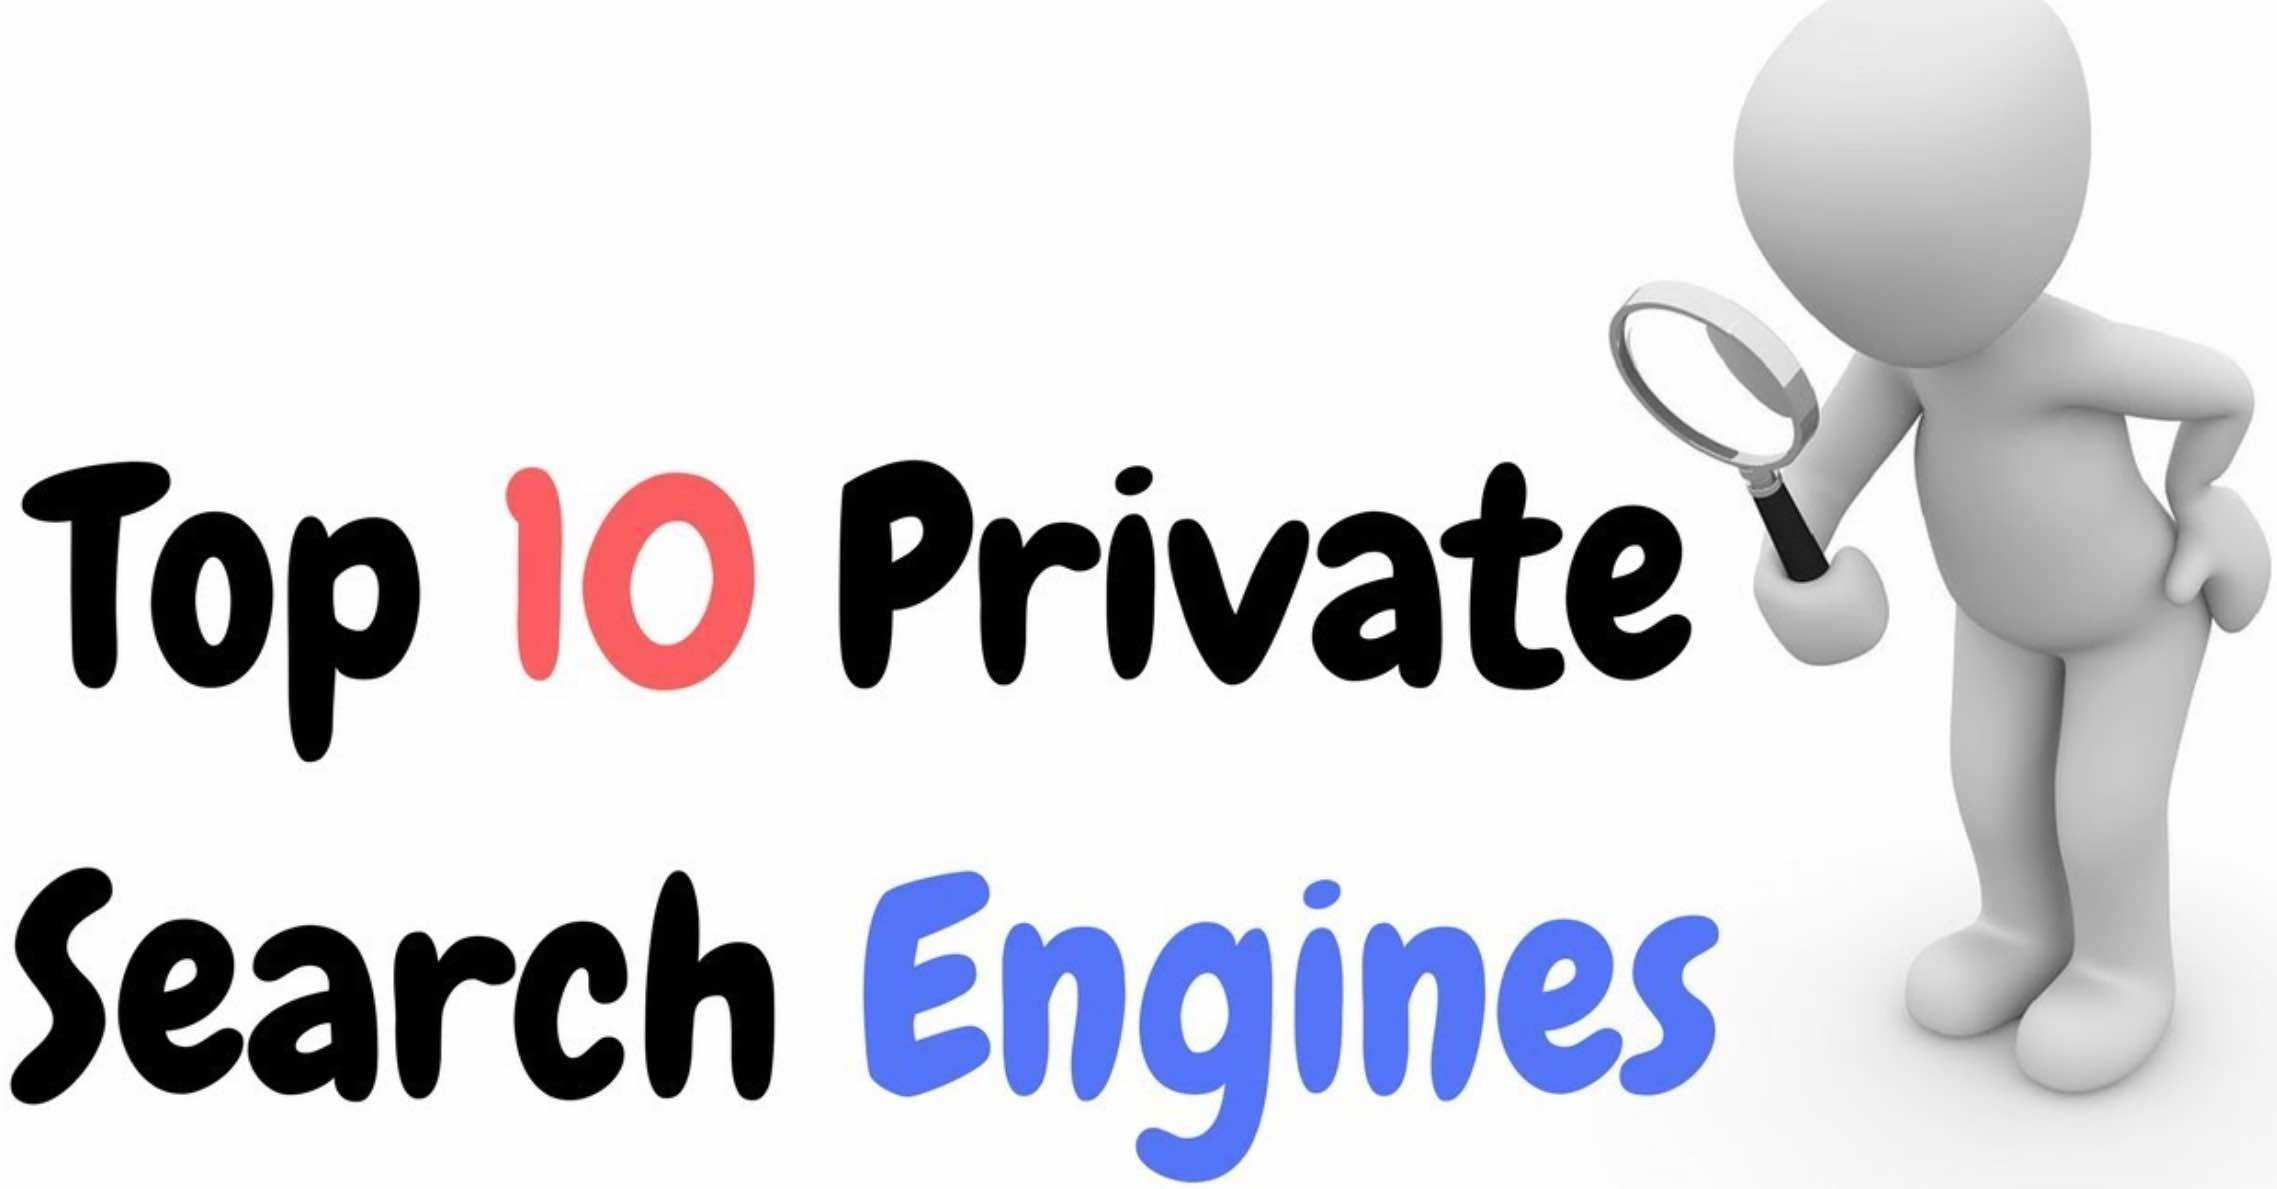 Does your search engine respect your privacy